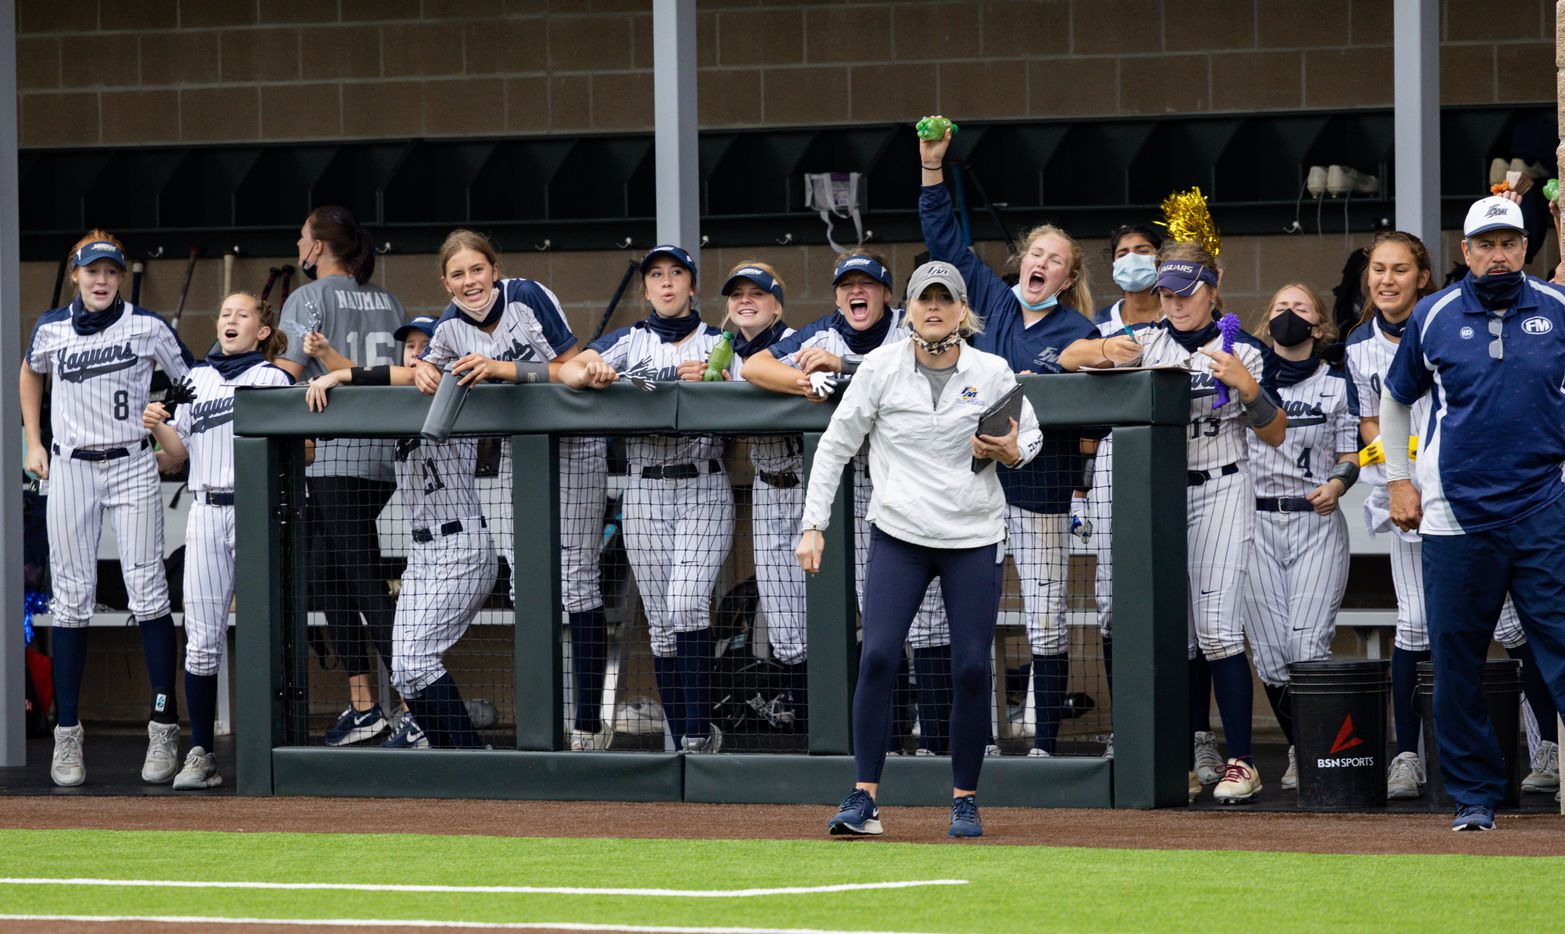 Flower Mound players cheer their team on during the second inning of a softball Class 6A bi-district playoff game against McKinney Boyd on Friday, April 30, 2021, in Denton. (Juan Figueroa/The Dallas Morning News)